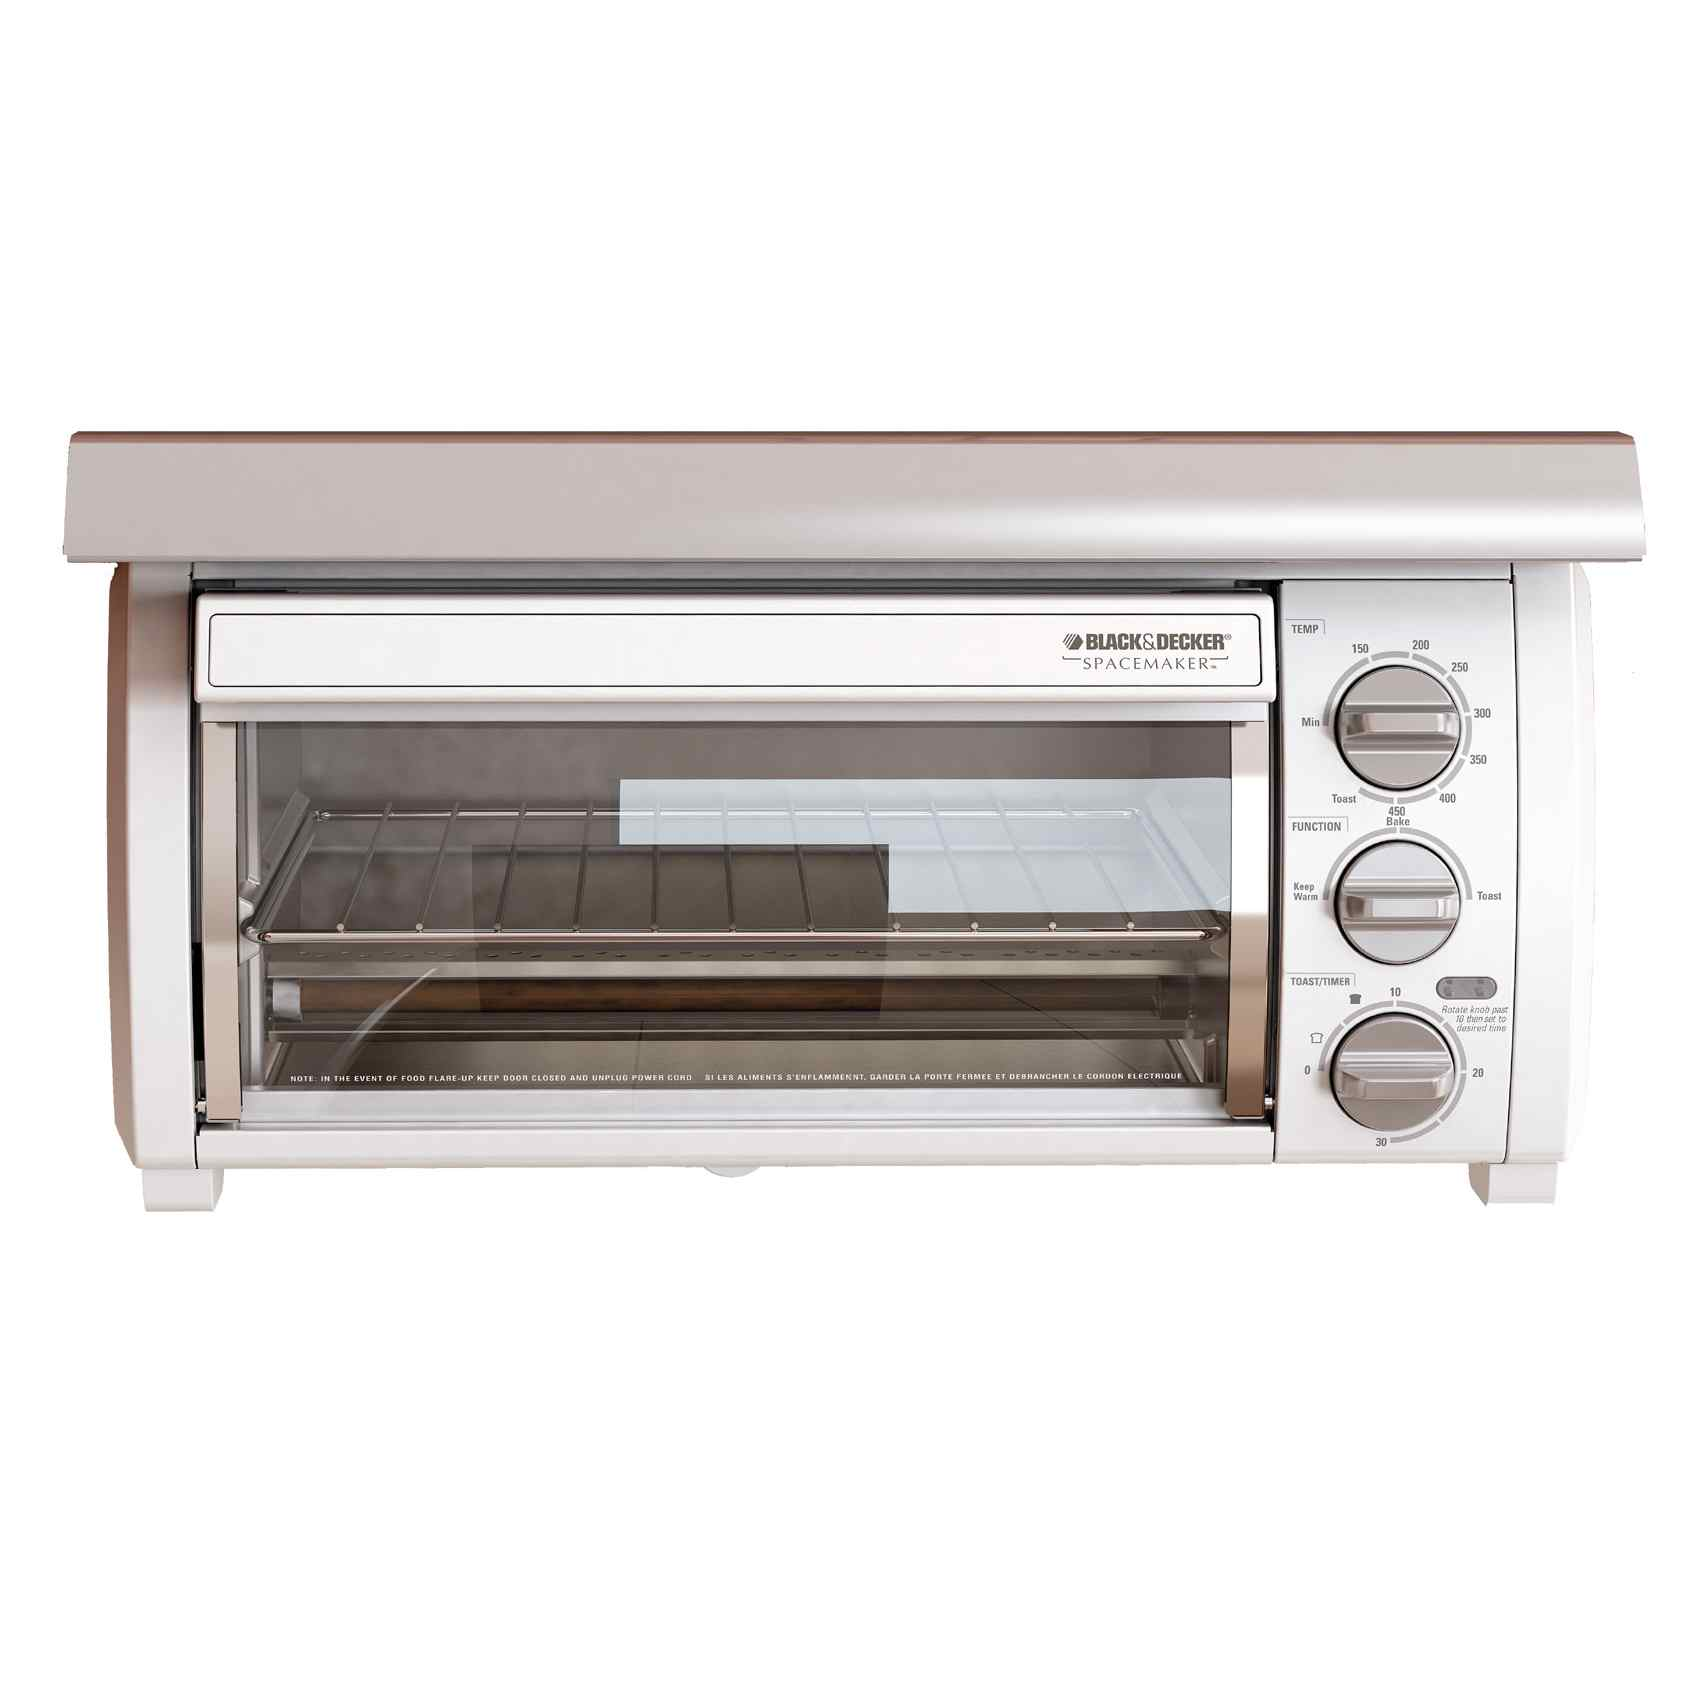 Black & Decker TROS1500 SpaceMaker Traditional Toaster Oven (Refurbished)